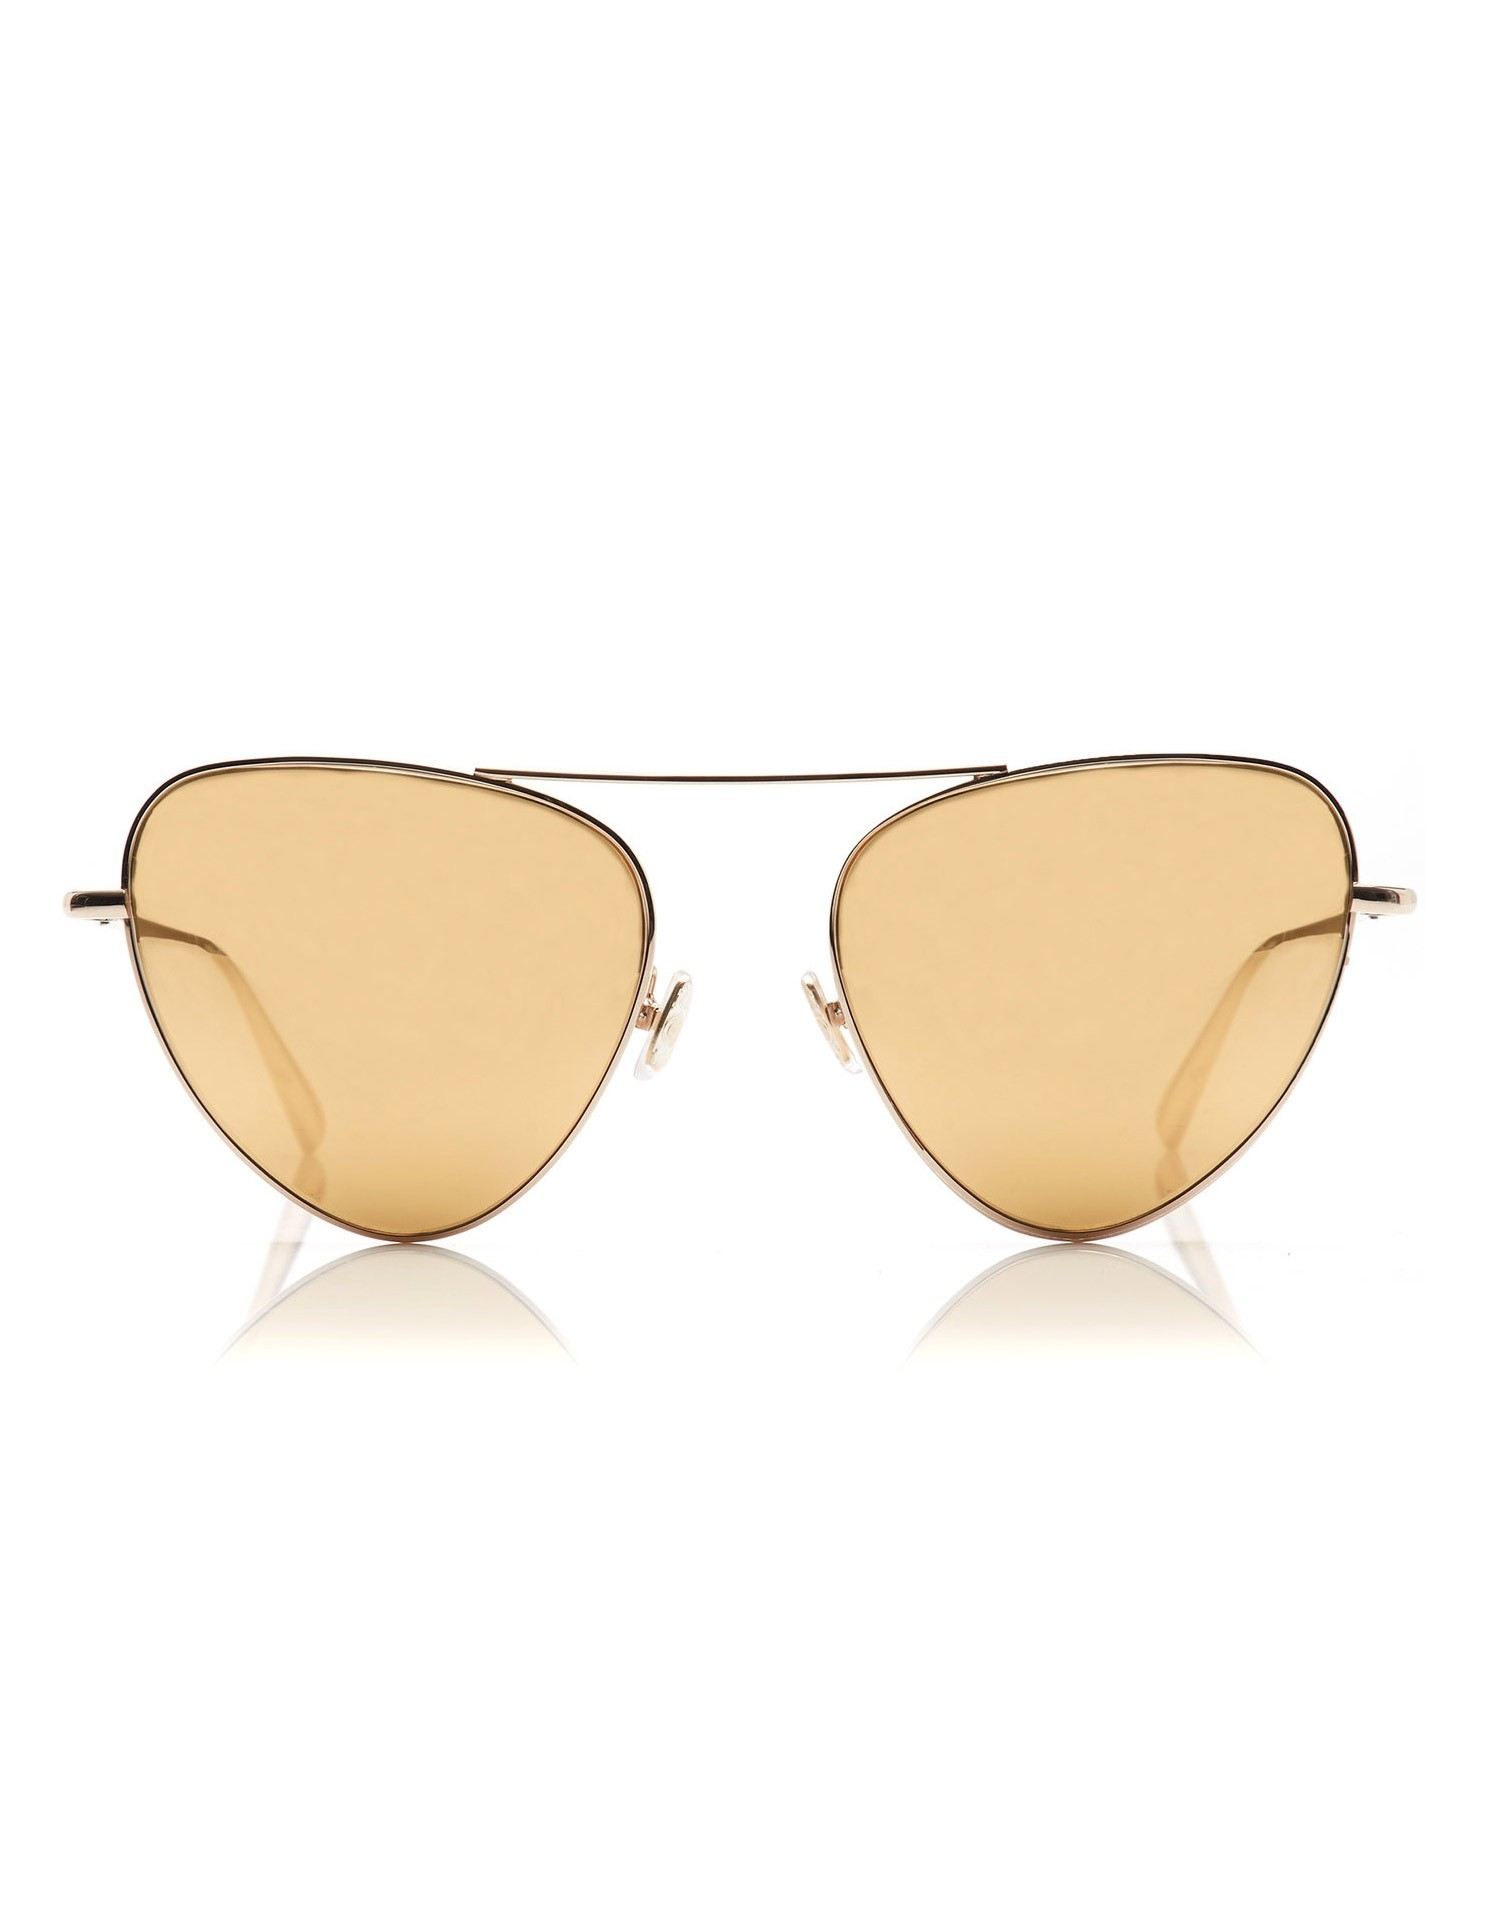 Monse Erika Sunglasses with Gold Shades